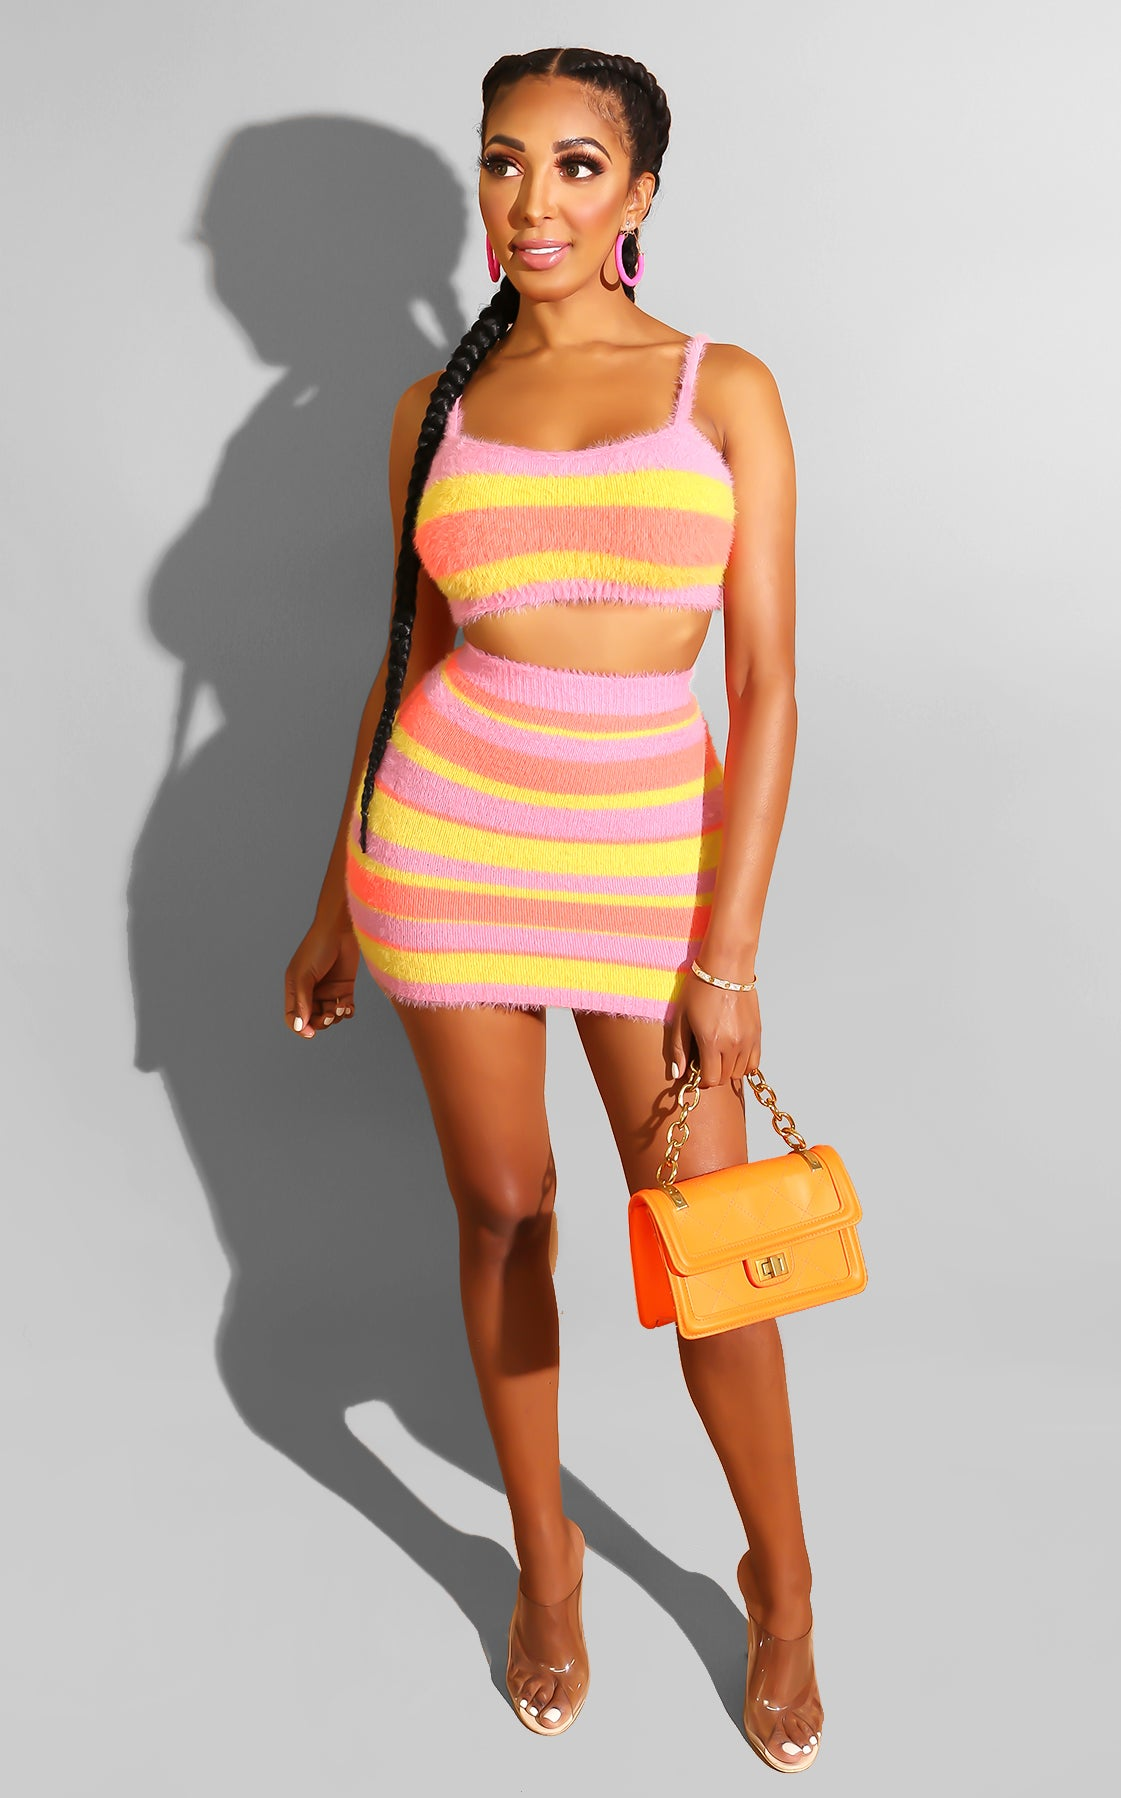 Jada Striped Skirt Set